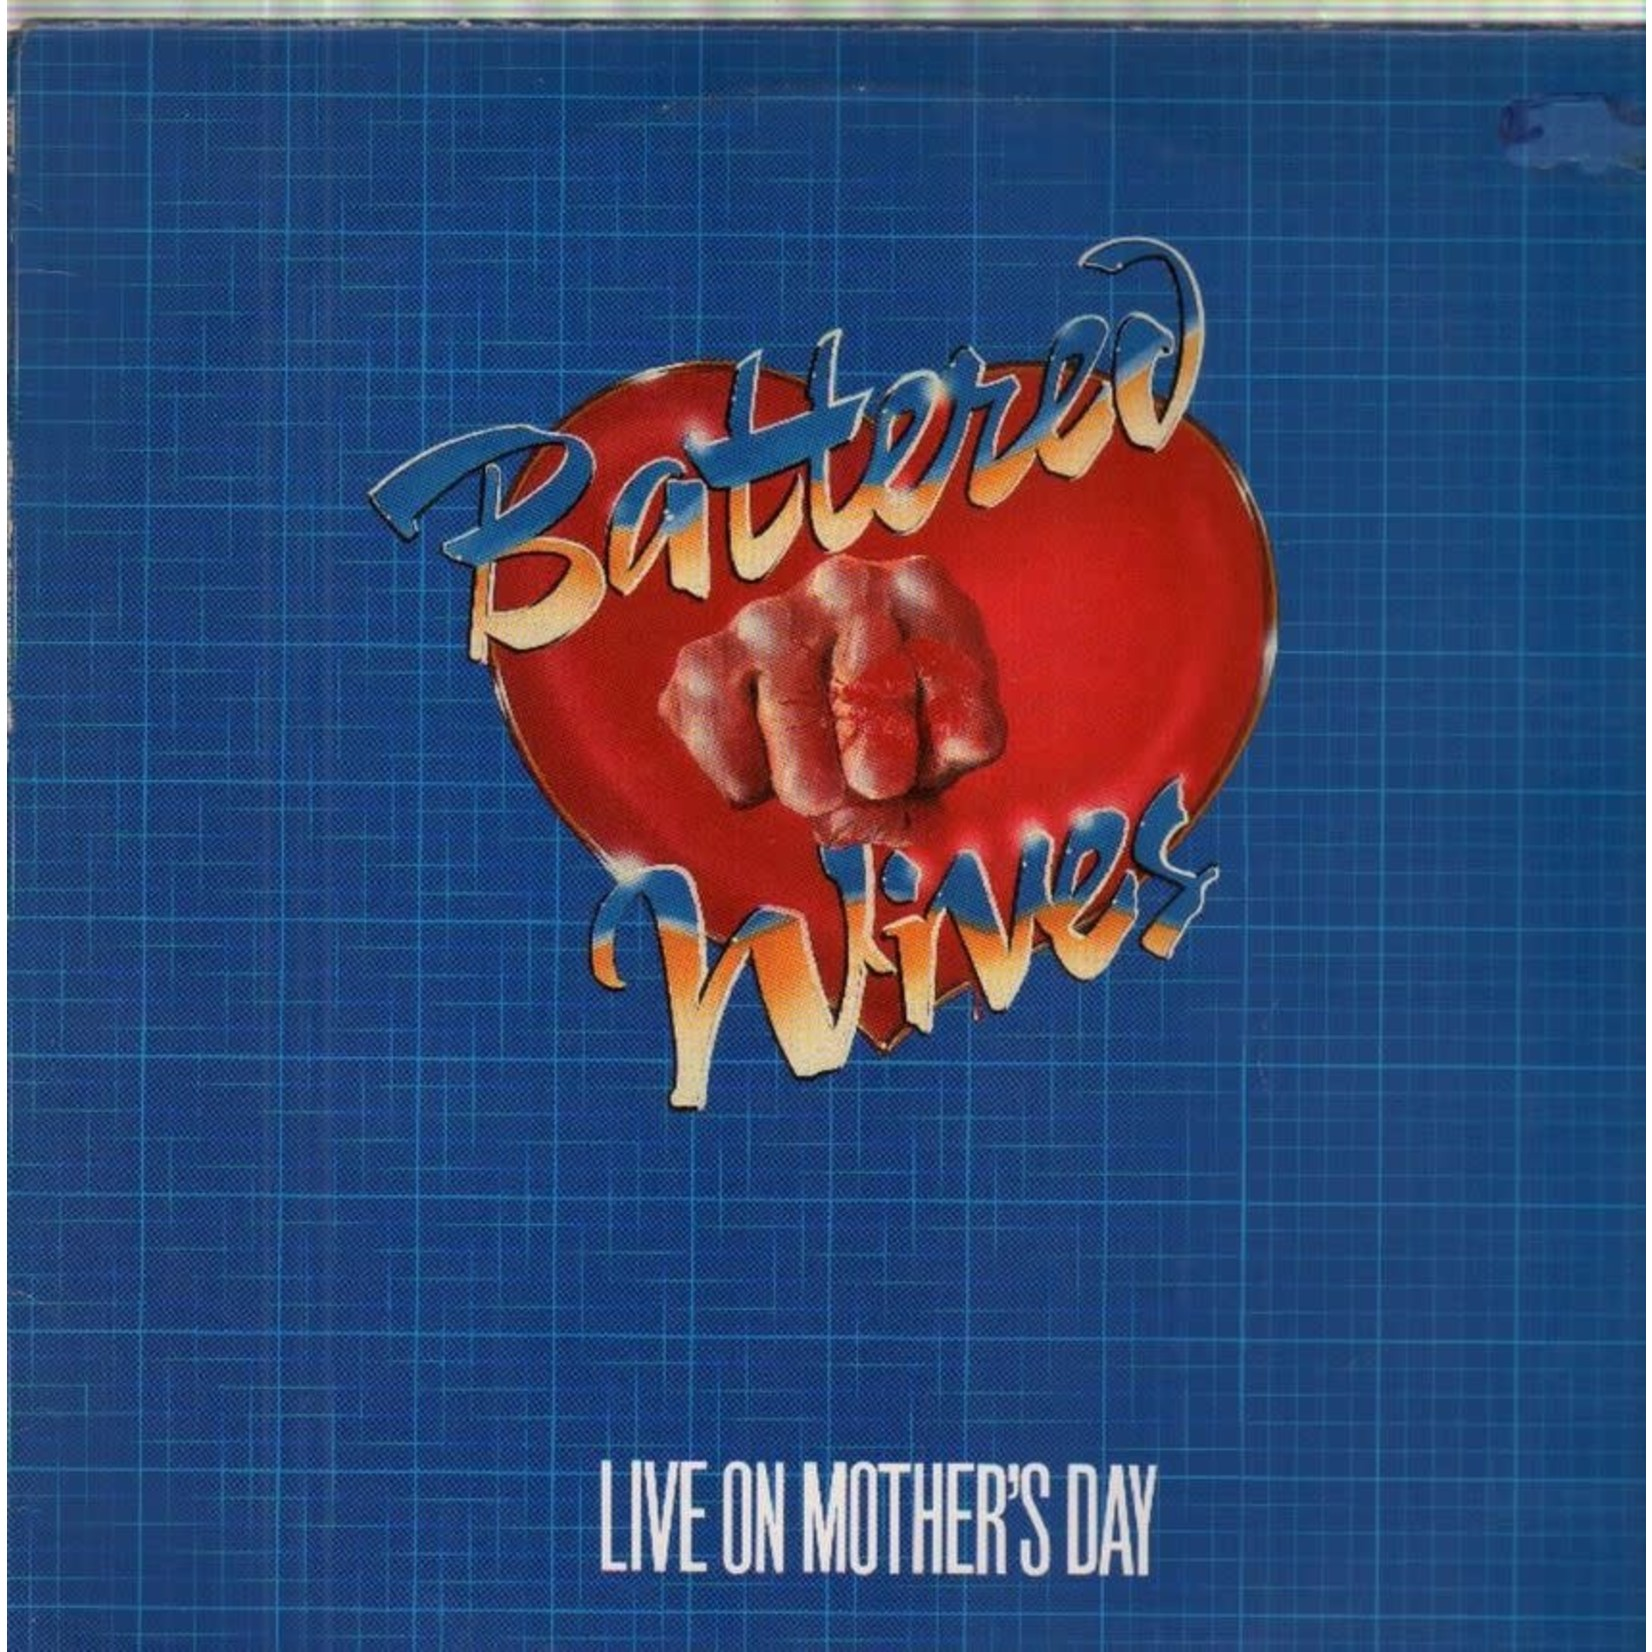 Vinyl Battered Wives - Live On Mothers Day 1980